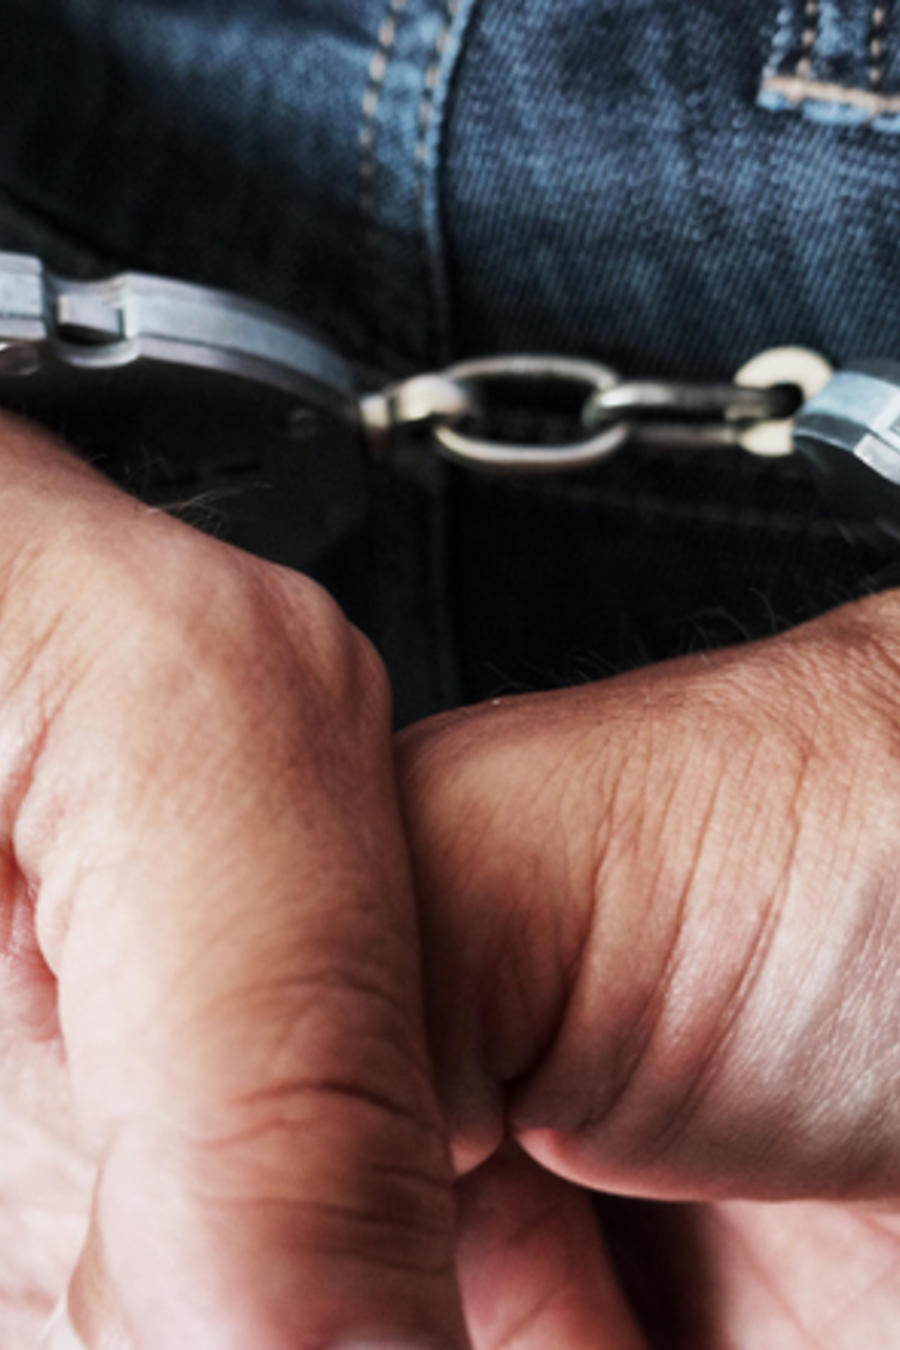 Cropped Hands Of Man With Handcuffs